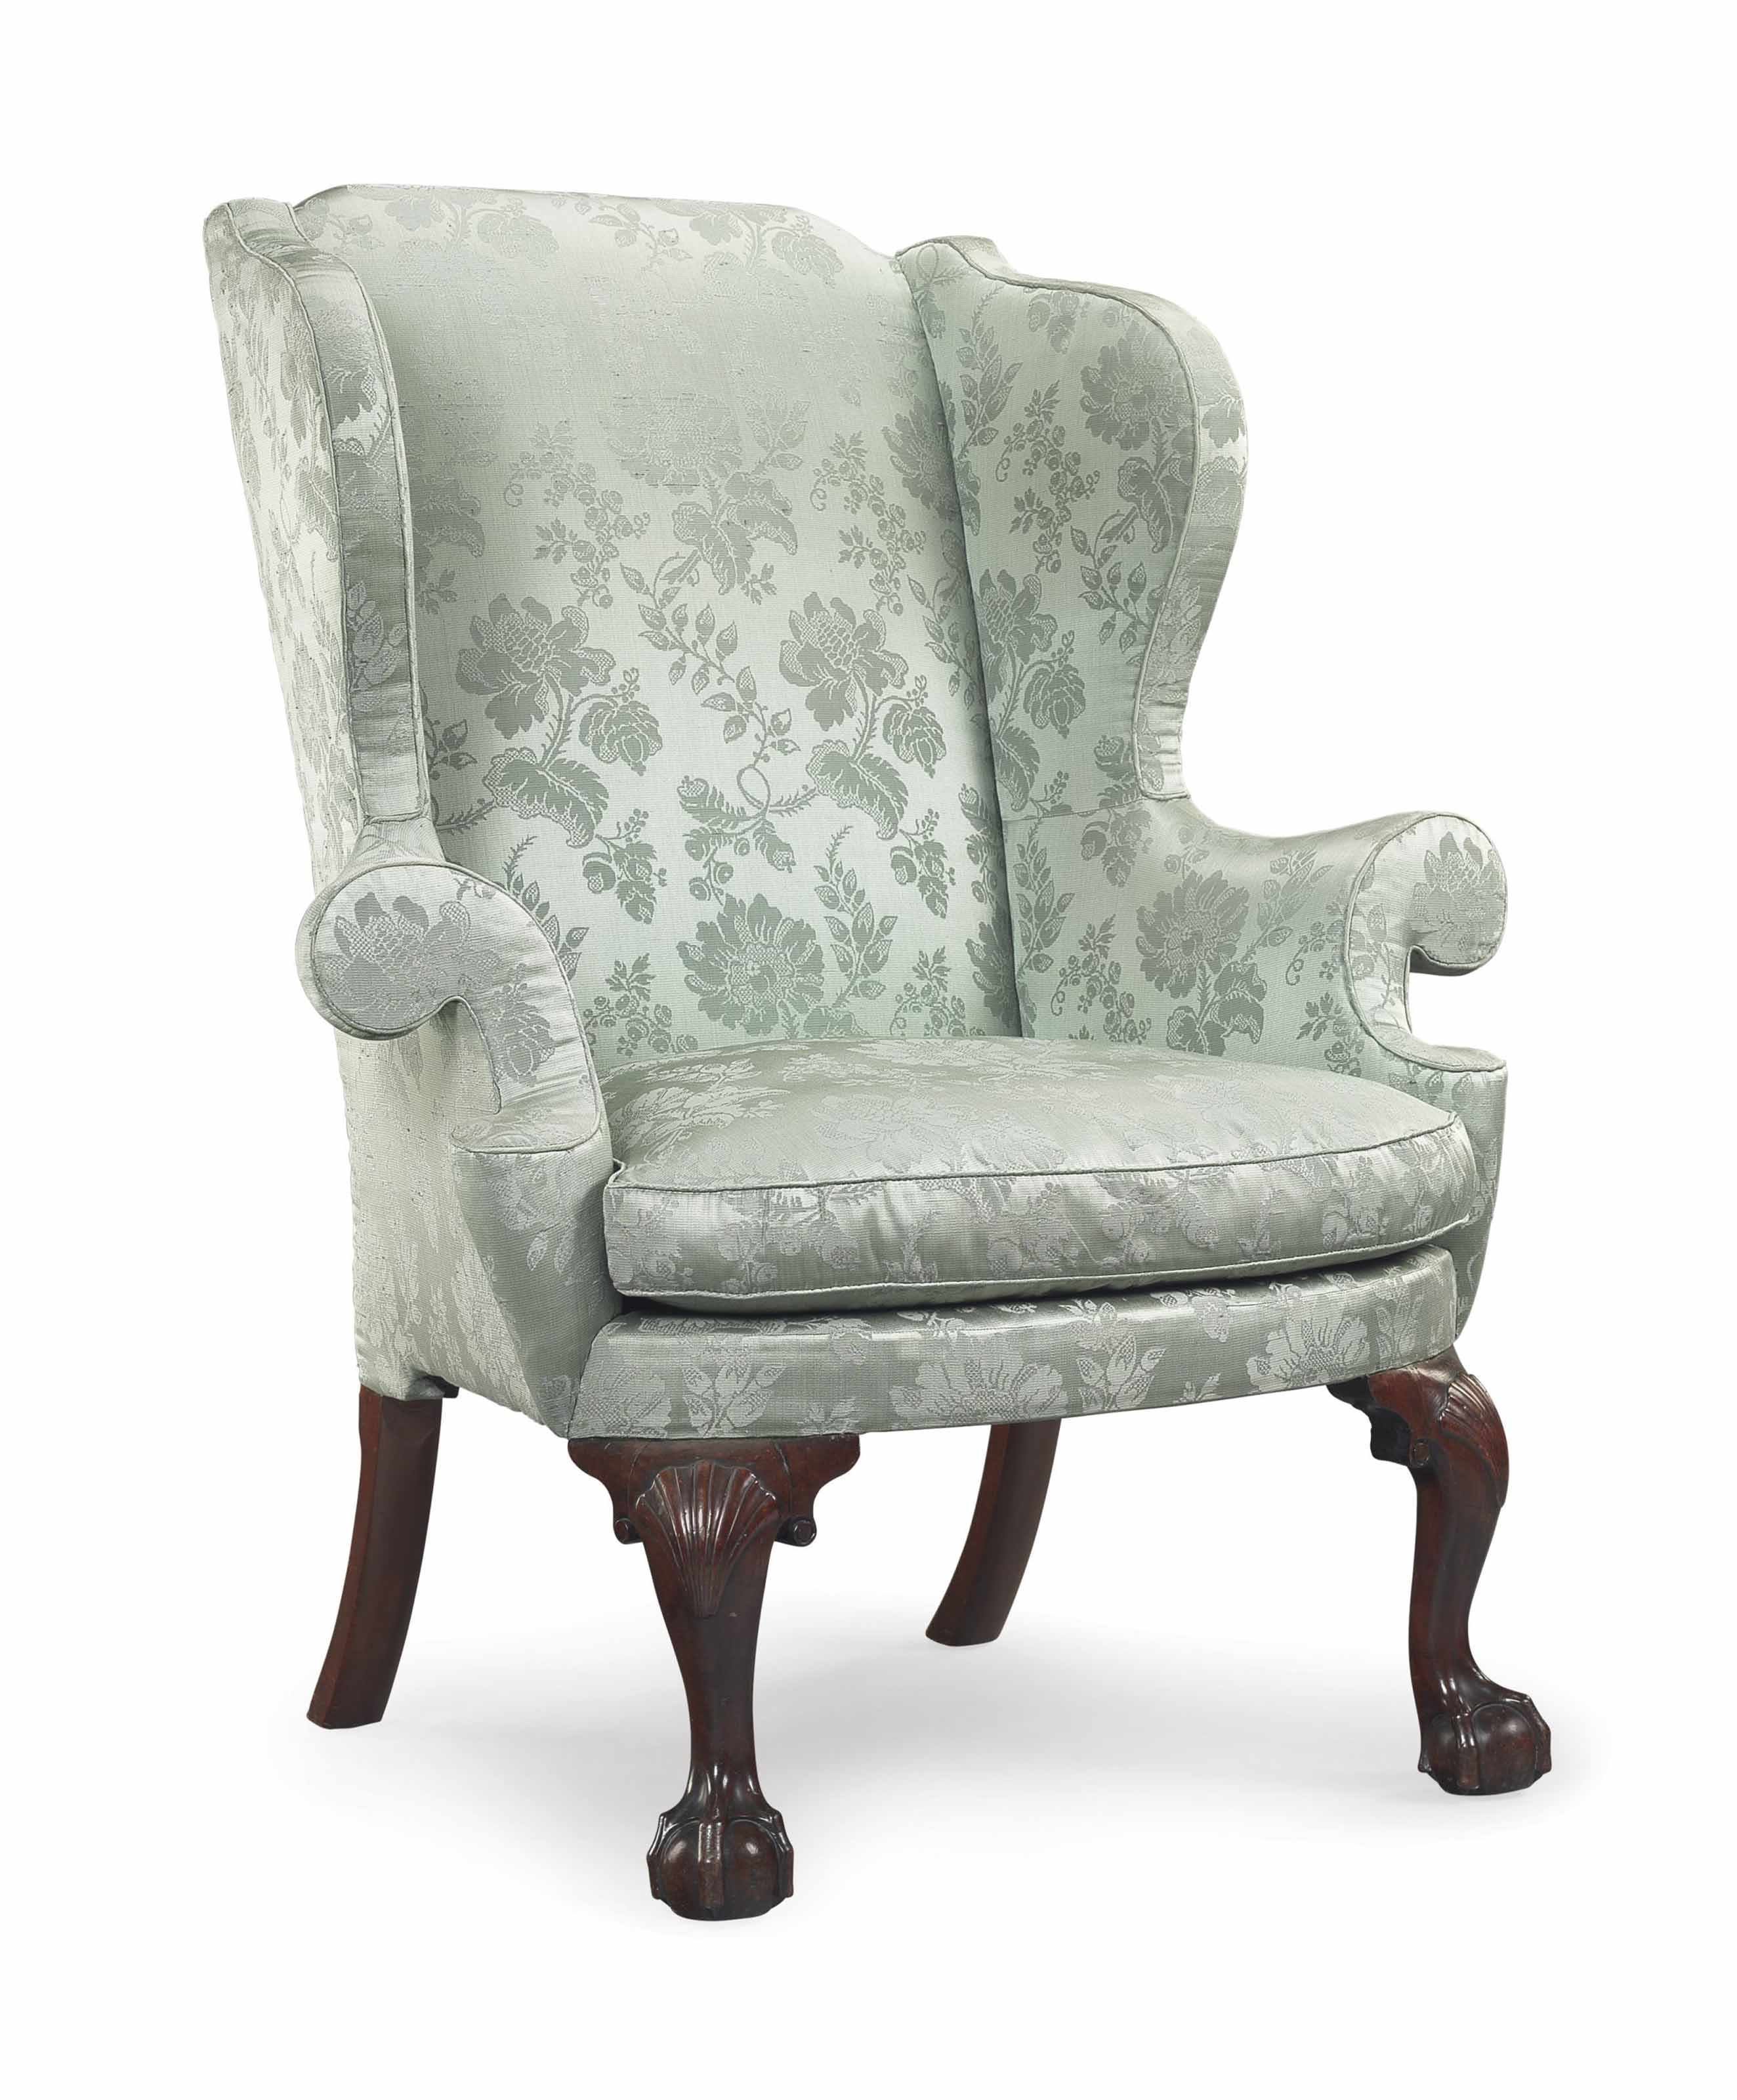 A CHIPPENDALE CARVED MAHOGANY EASY CHAIR